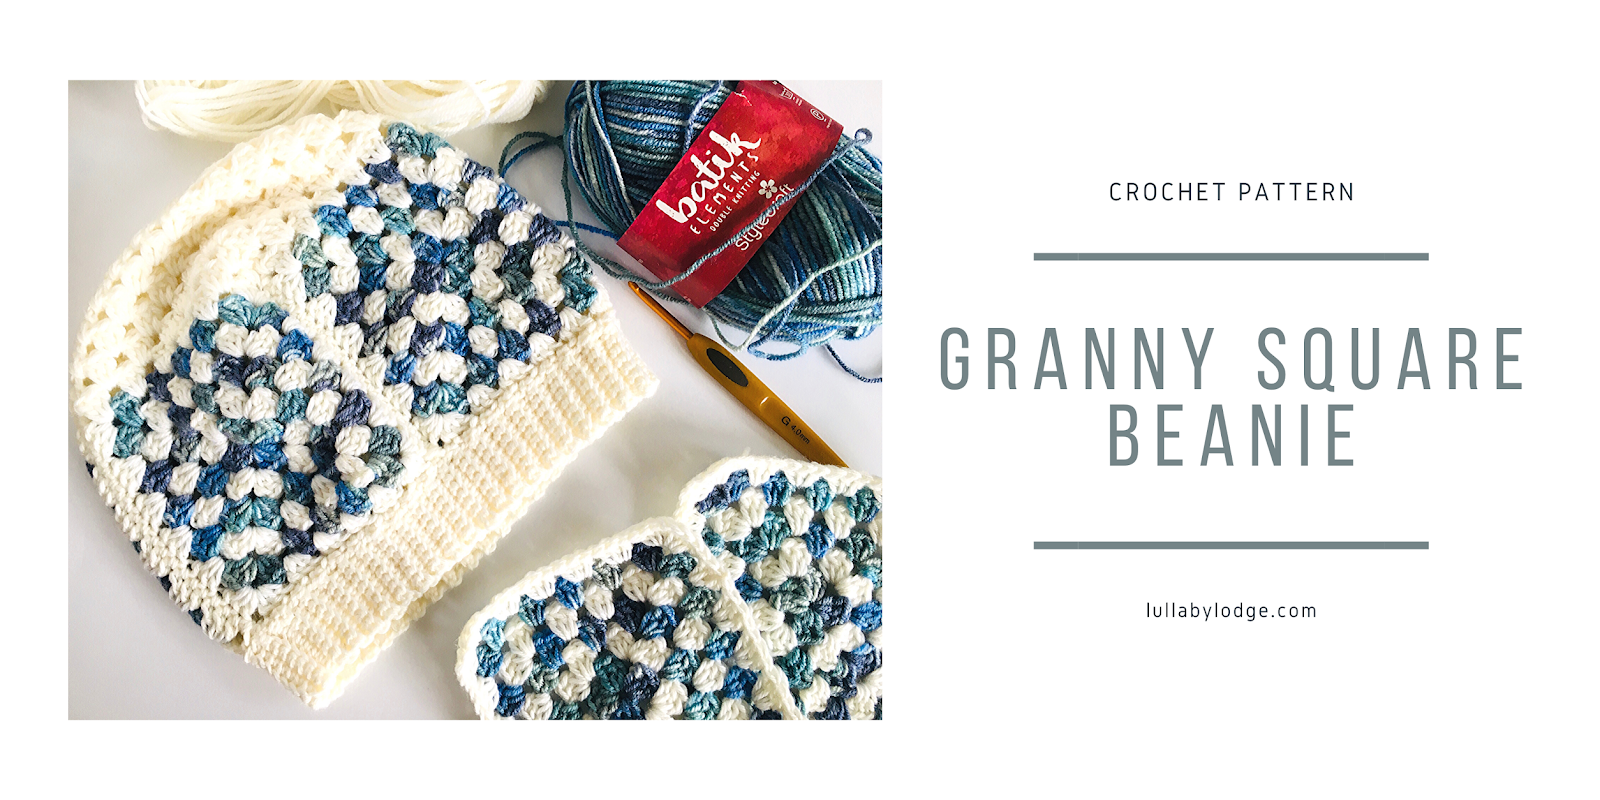 Crochet pattern. Granny square beanie. lullabylodge.com. Crochet hat made of granny squares and topped with granny stitch. ribbed bottom edge. Granny squares alternate soft white and variegate blue.